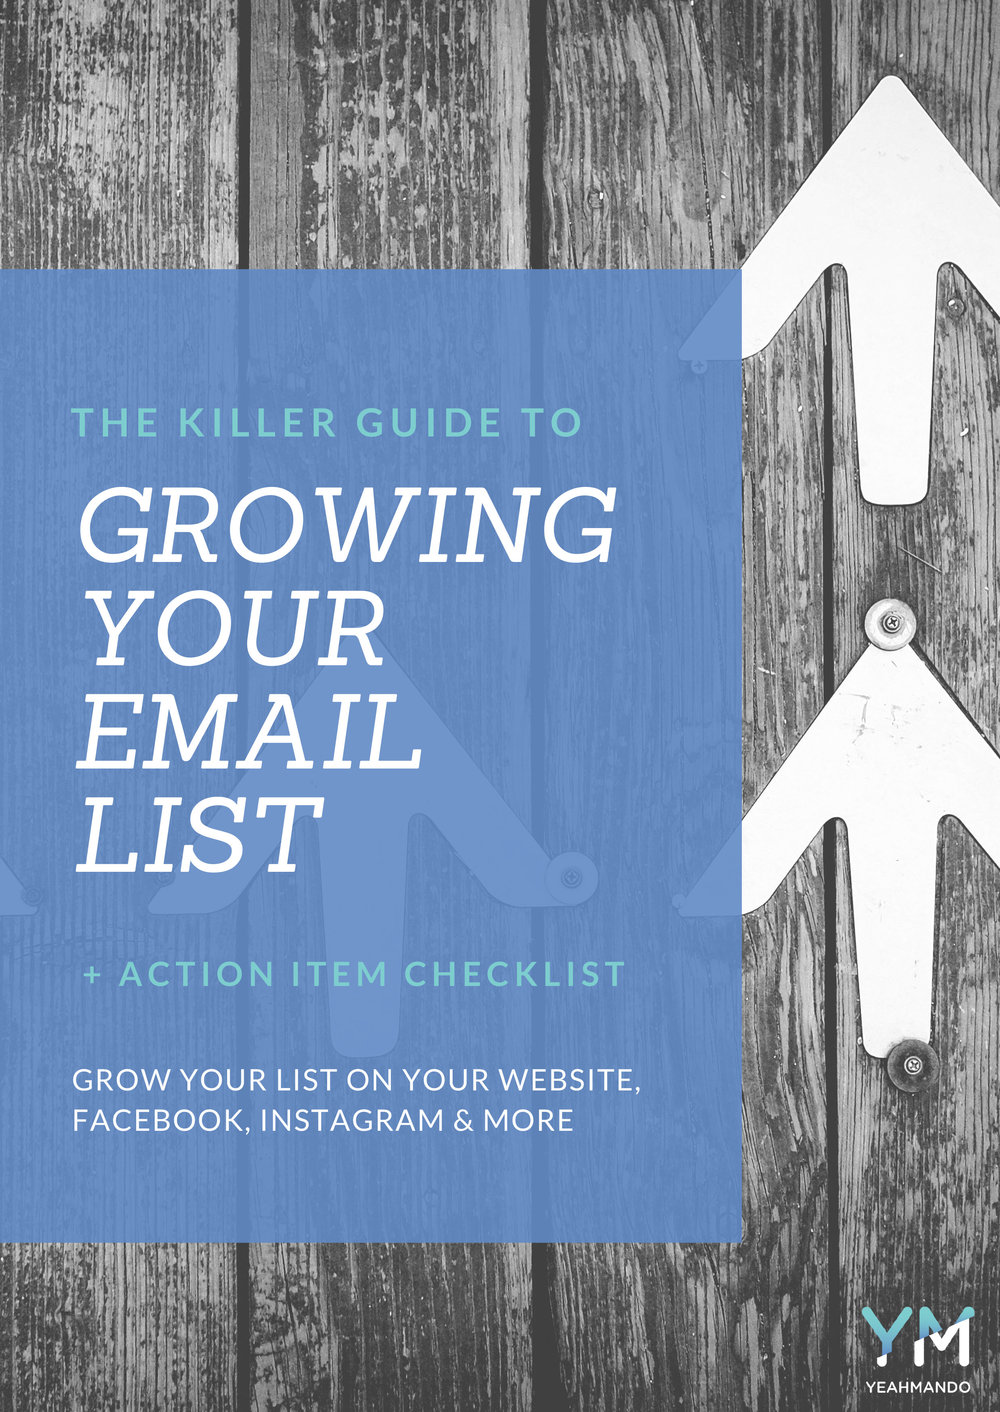 THE-KILLER-GUIDE-TO-GROWING-YOUR-EMAIL-LIST-WOOO!-1.jpg